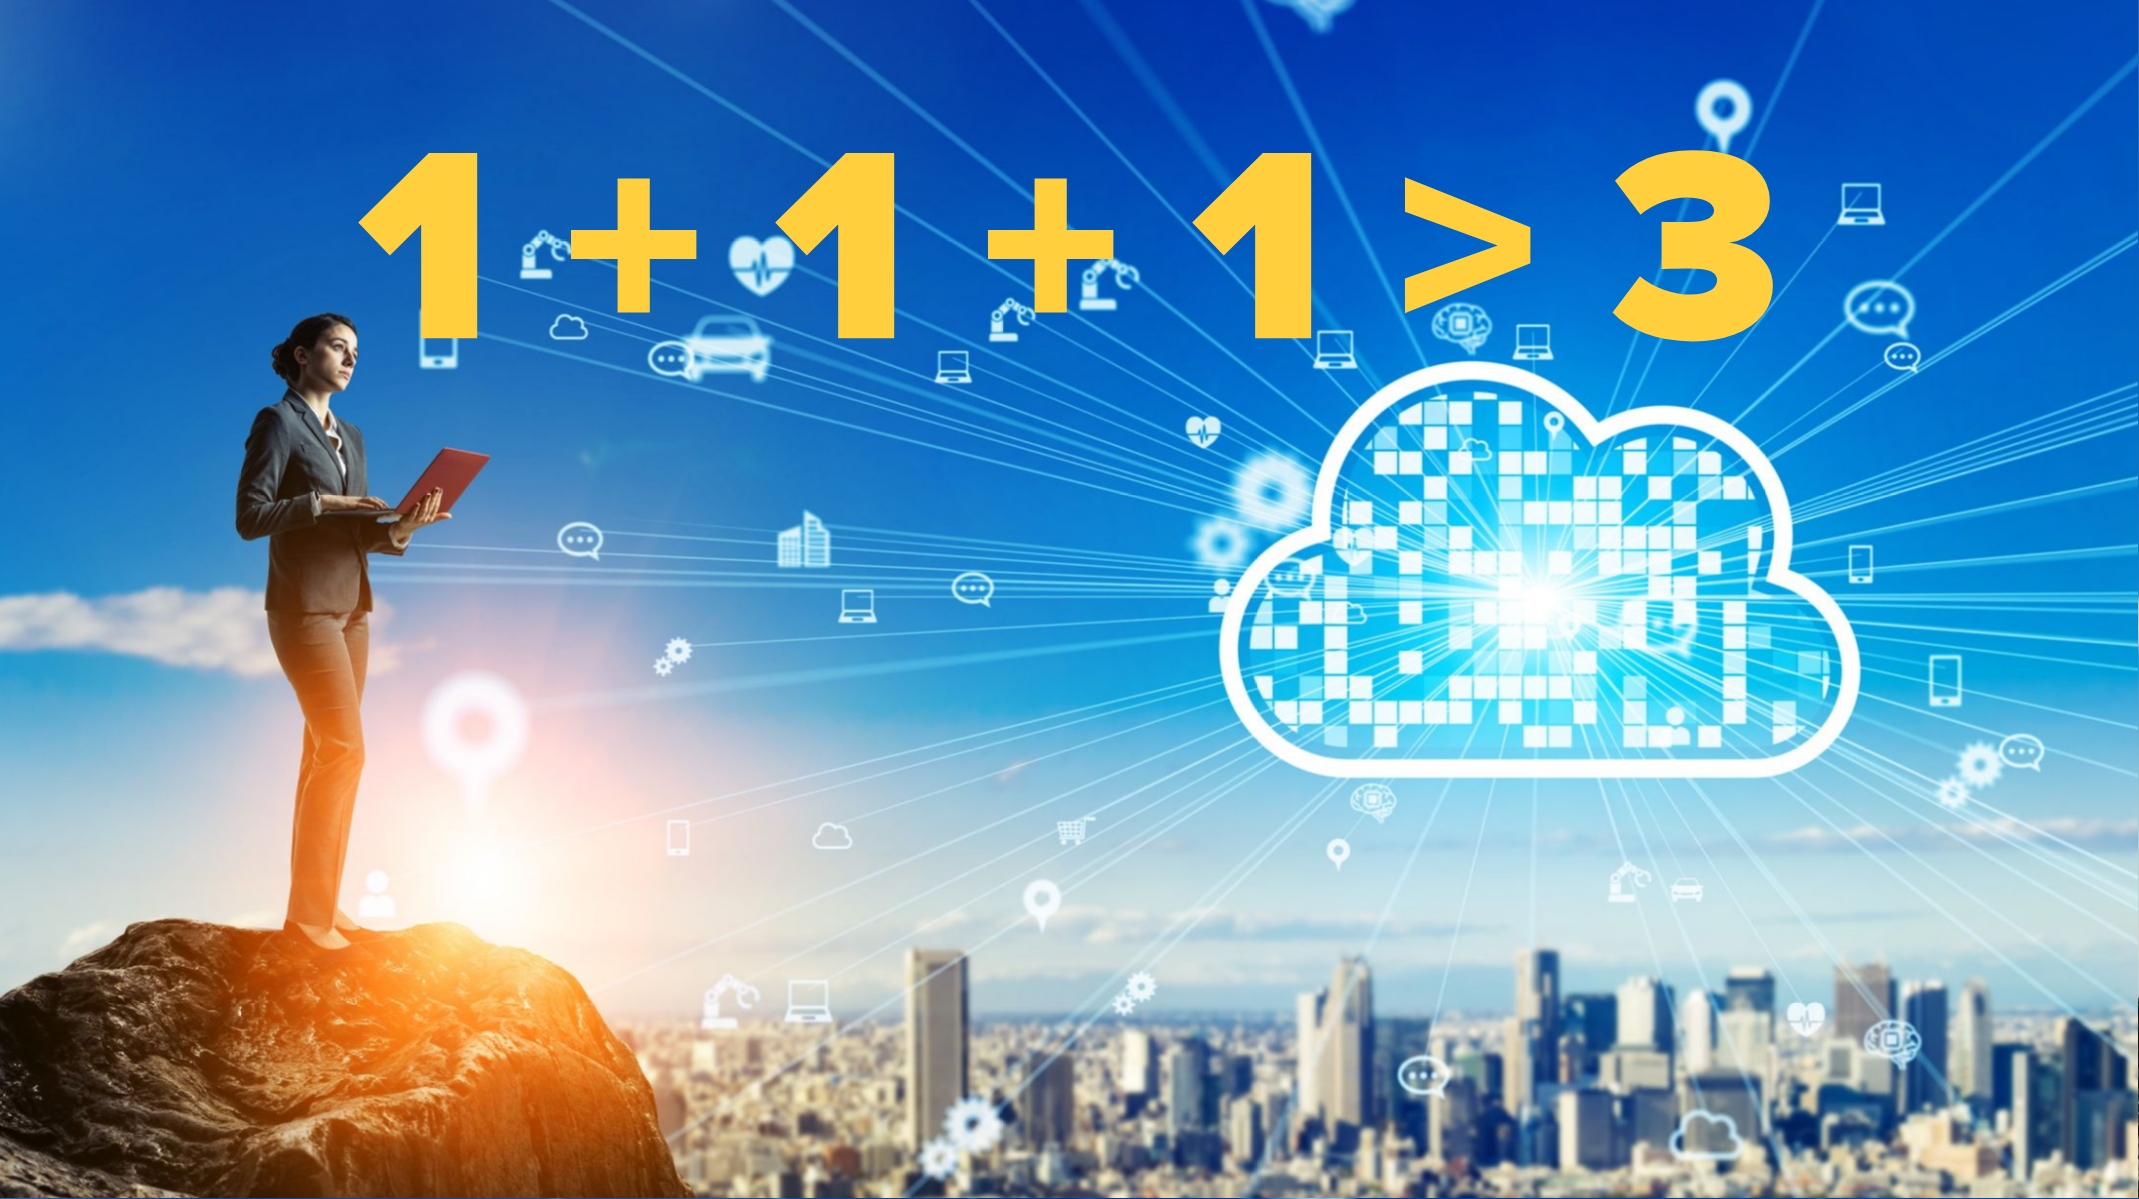 1+1+1>3 When It's a Hybrid Multi-Cloud Ecosystem at the Edge